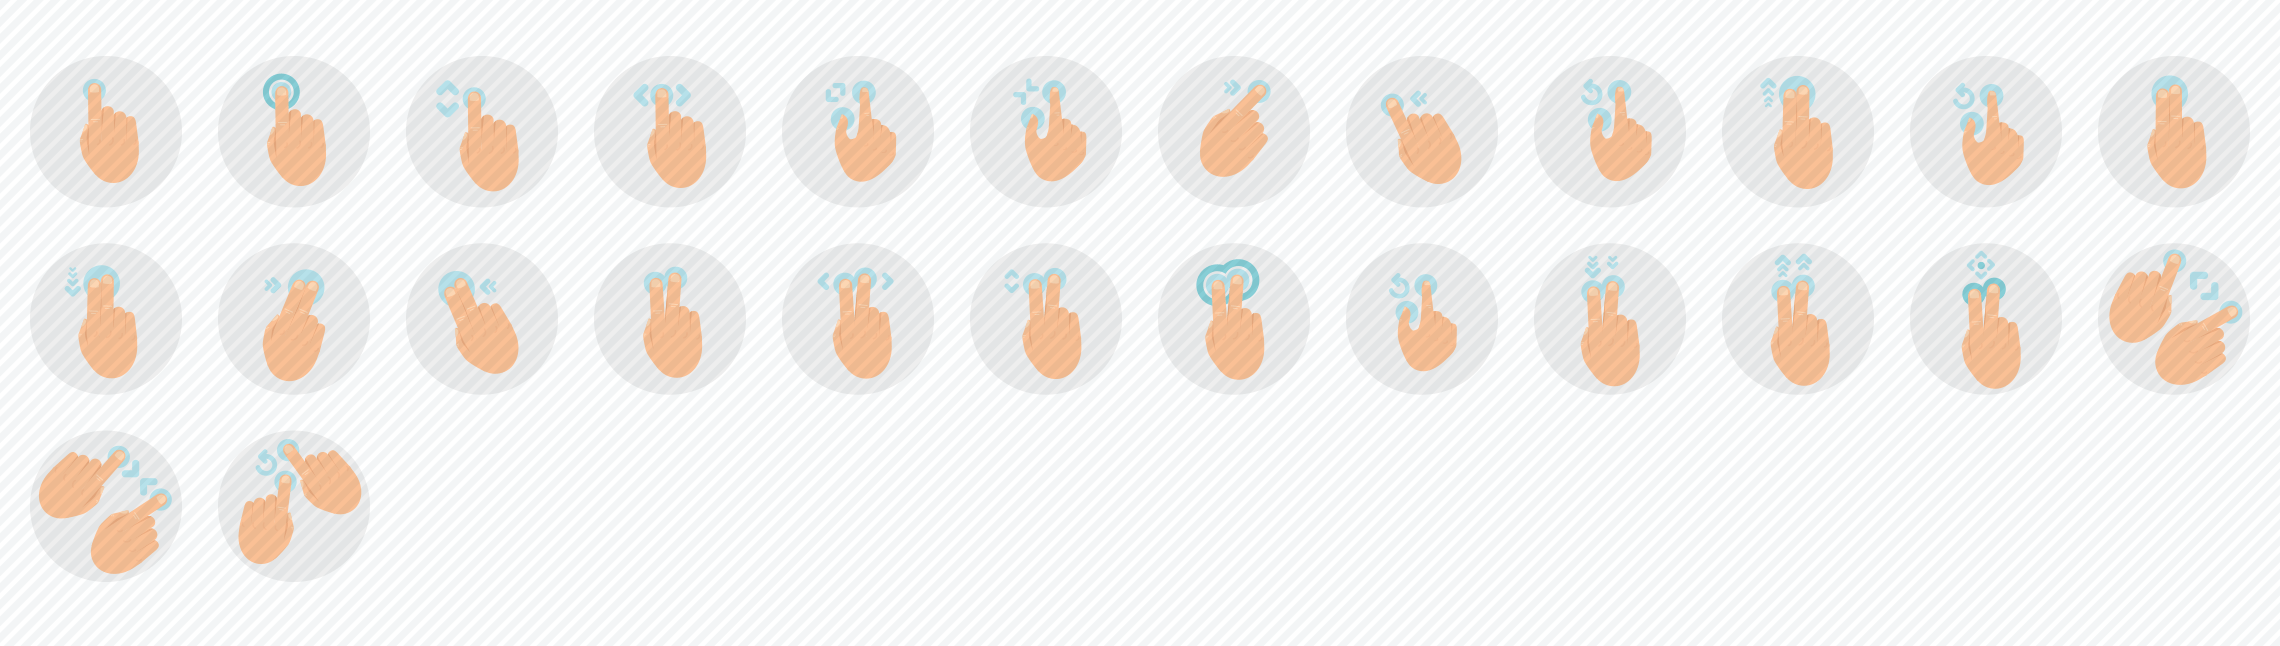 touch-gestures-flat-icons-set